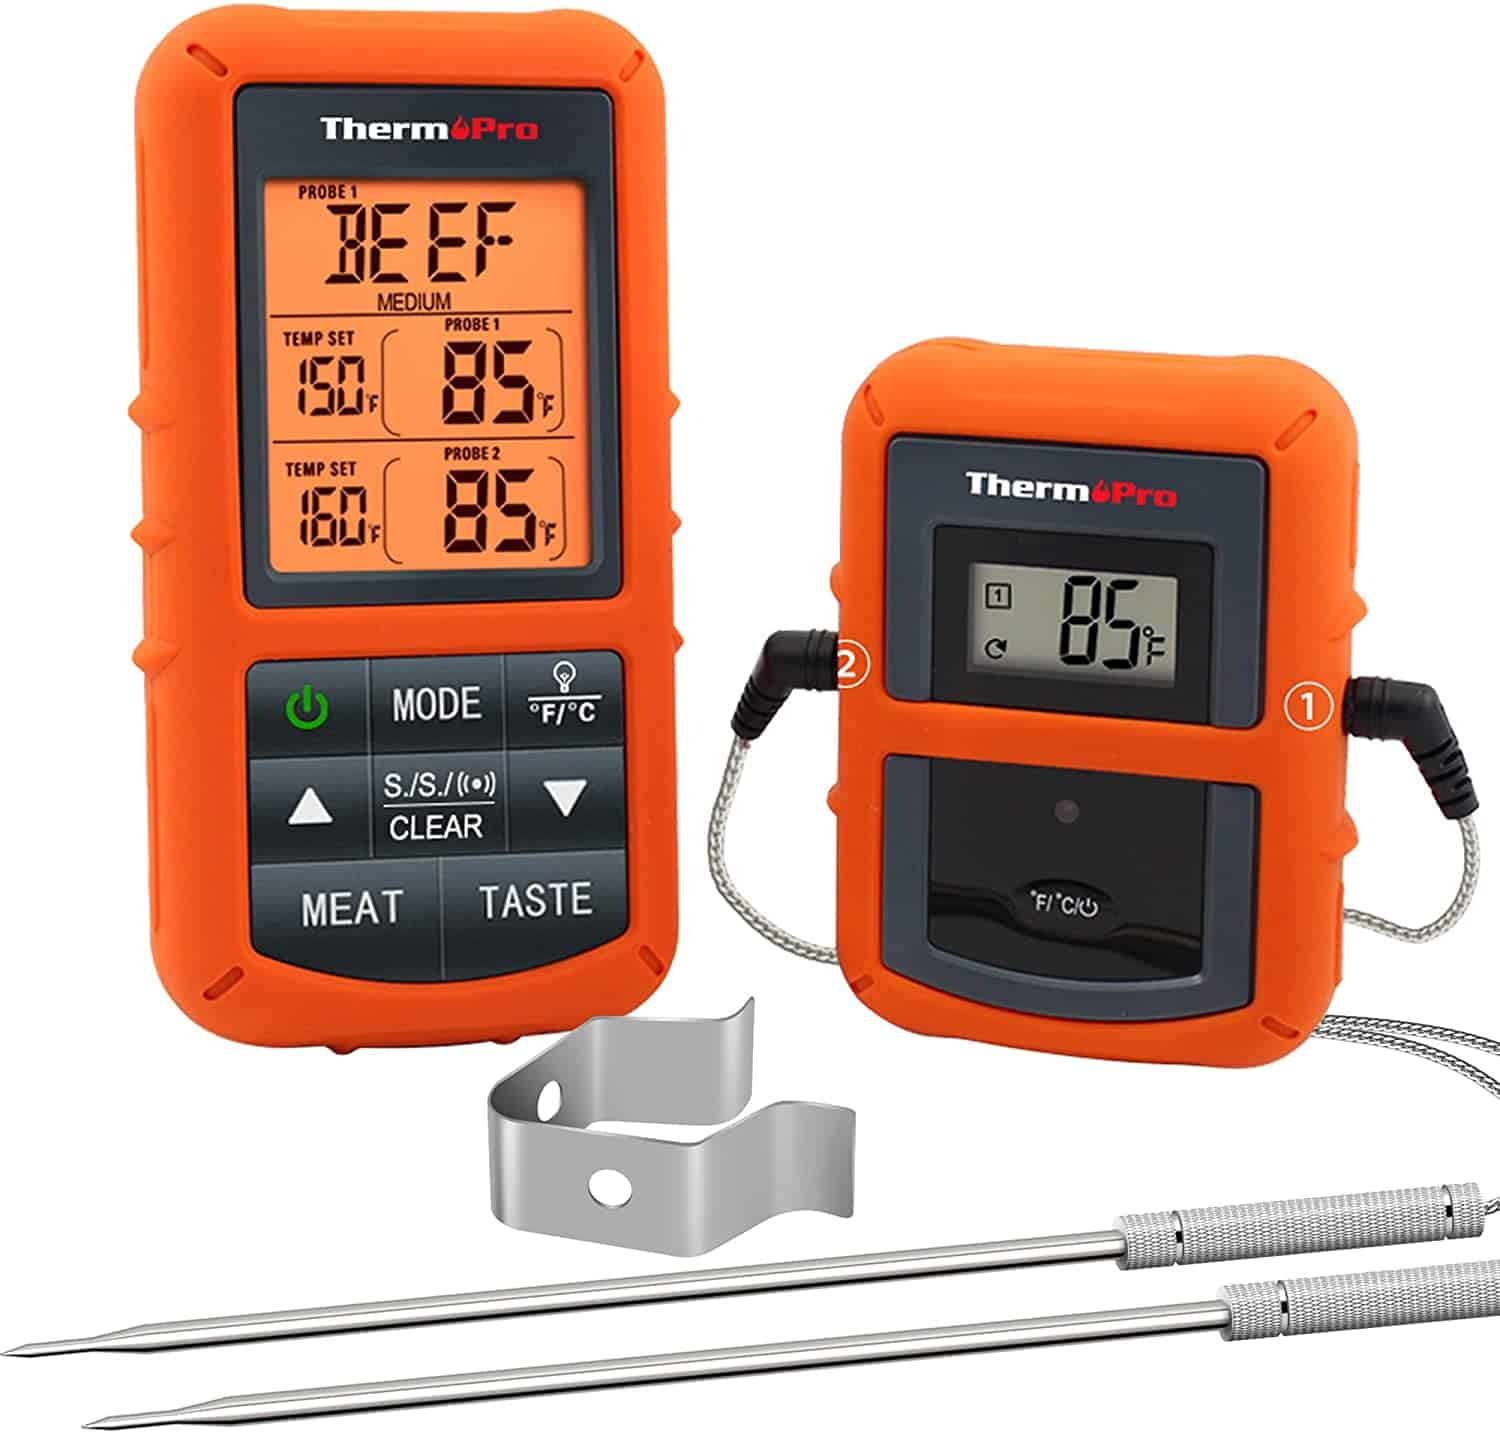 Best leave-in thermometer-ThermoPro TP20